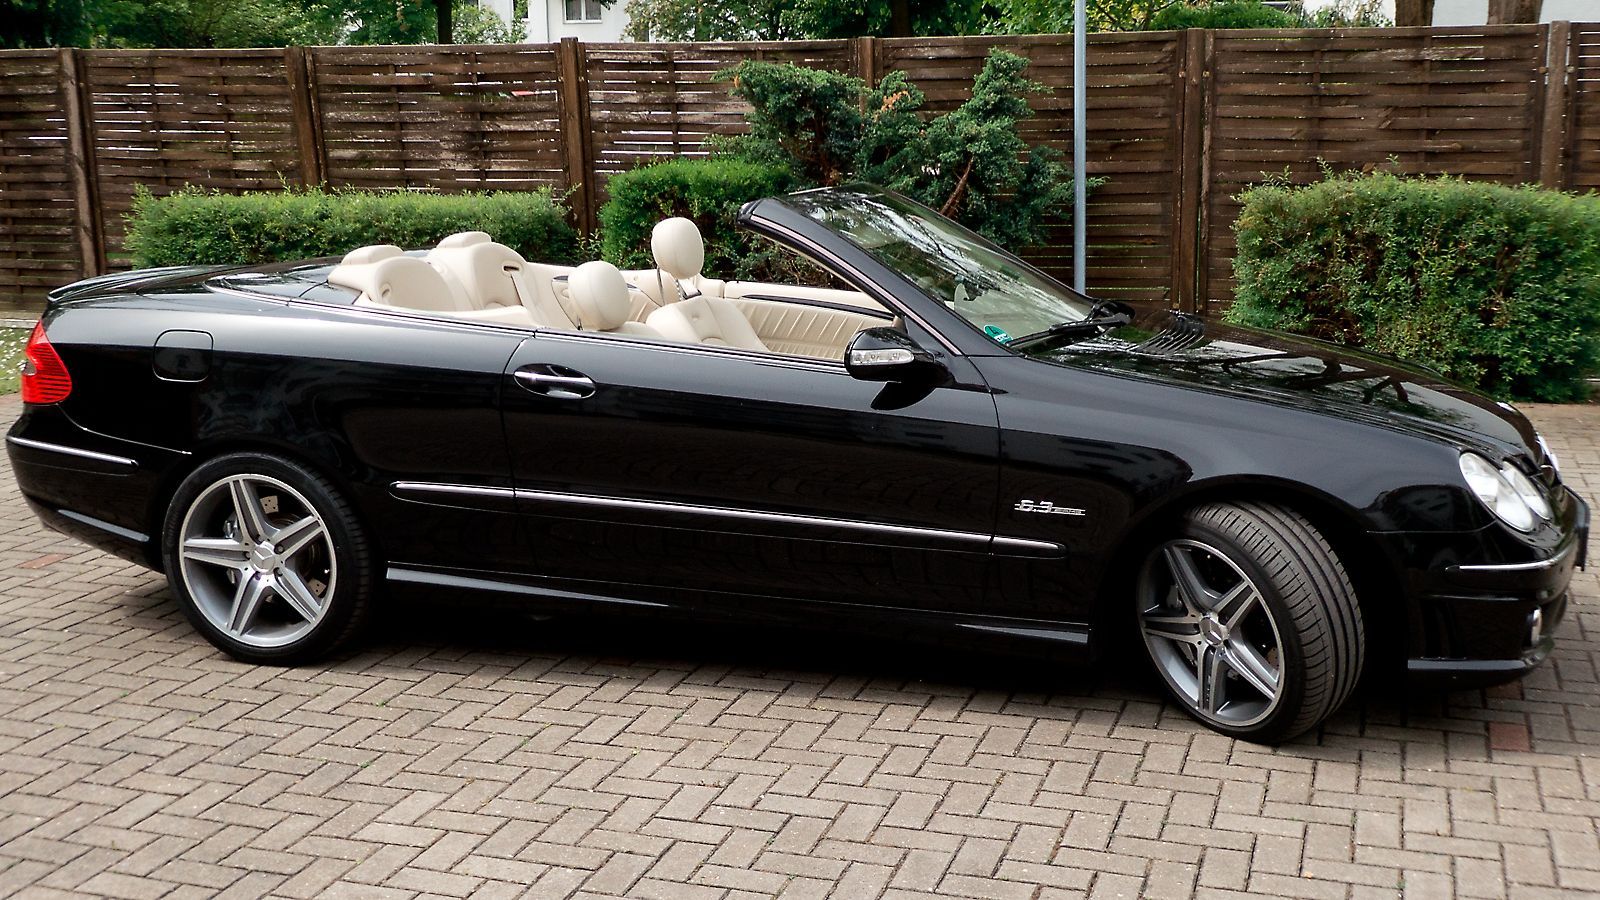 mercedes clk 63 amg cabrio mercedes amg cabrio. Black Bedroom Furniture Sets. Home Design Ideas